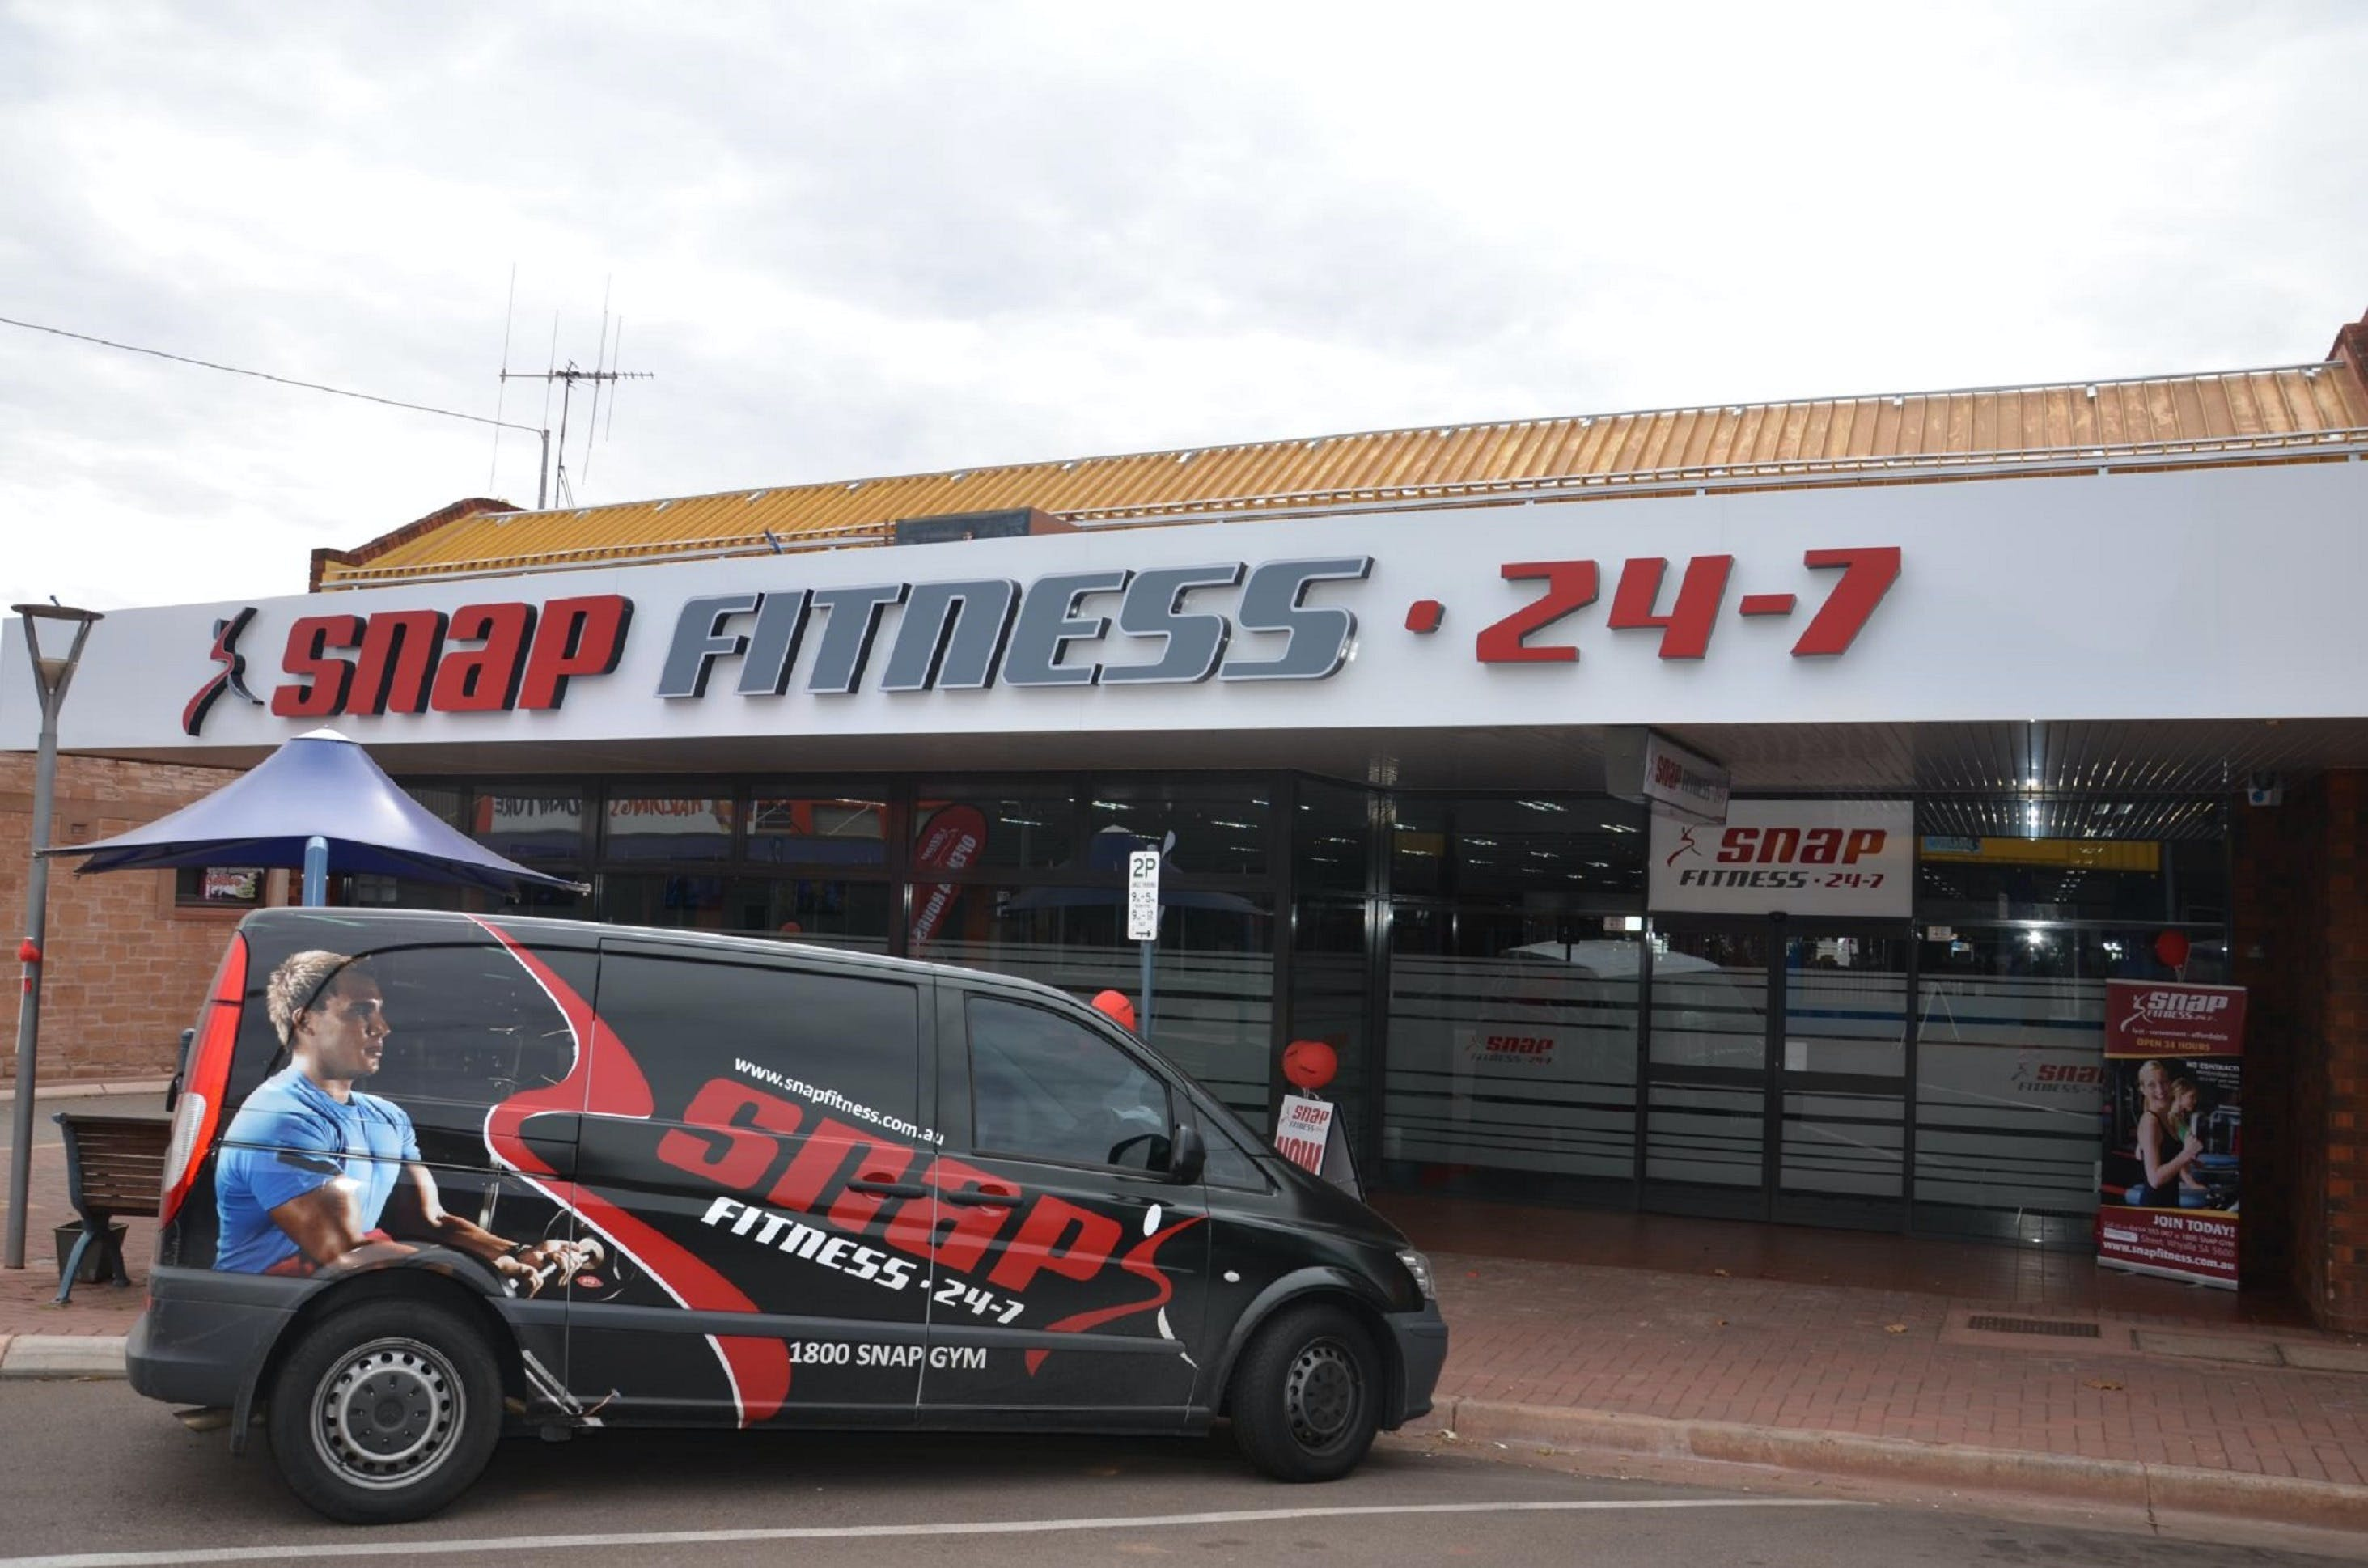 Snap Fitness Whyalla 24/7 gym - Attractions Sydney